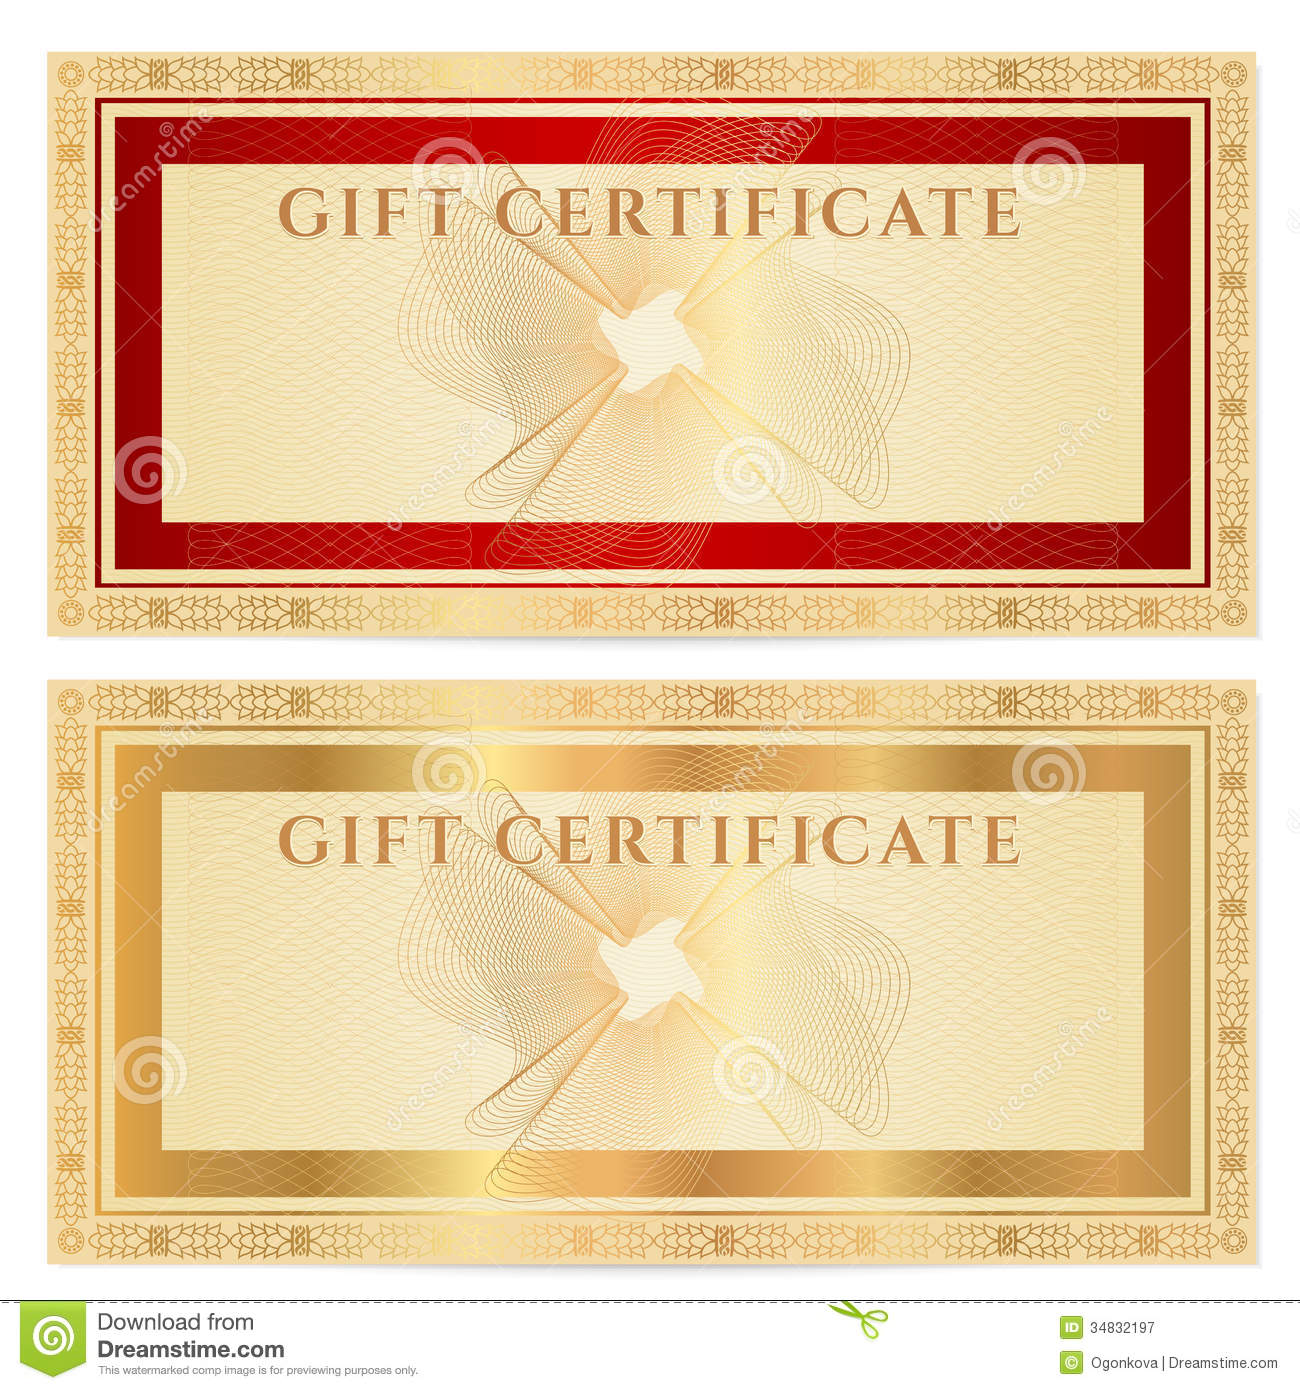 gift certificate voucher template with borders stock vector